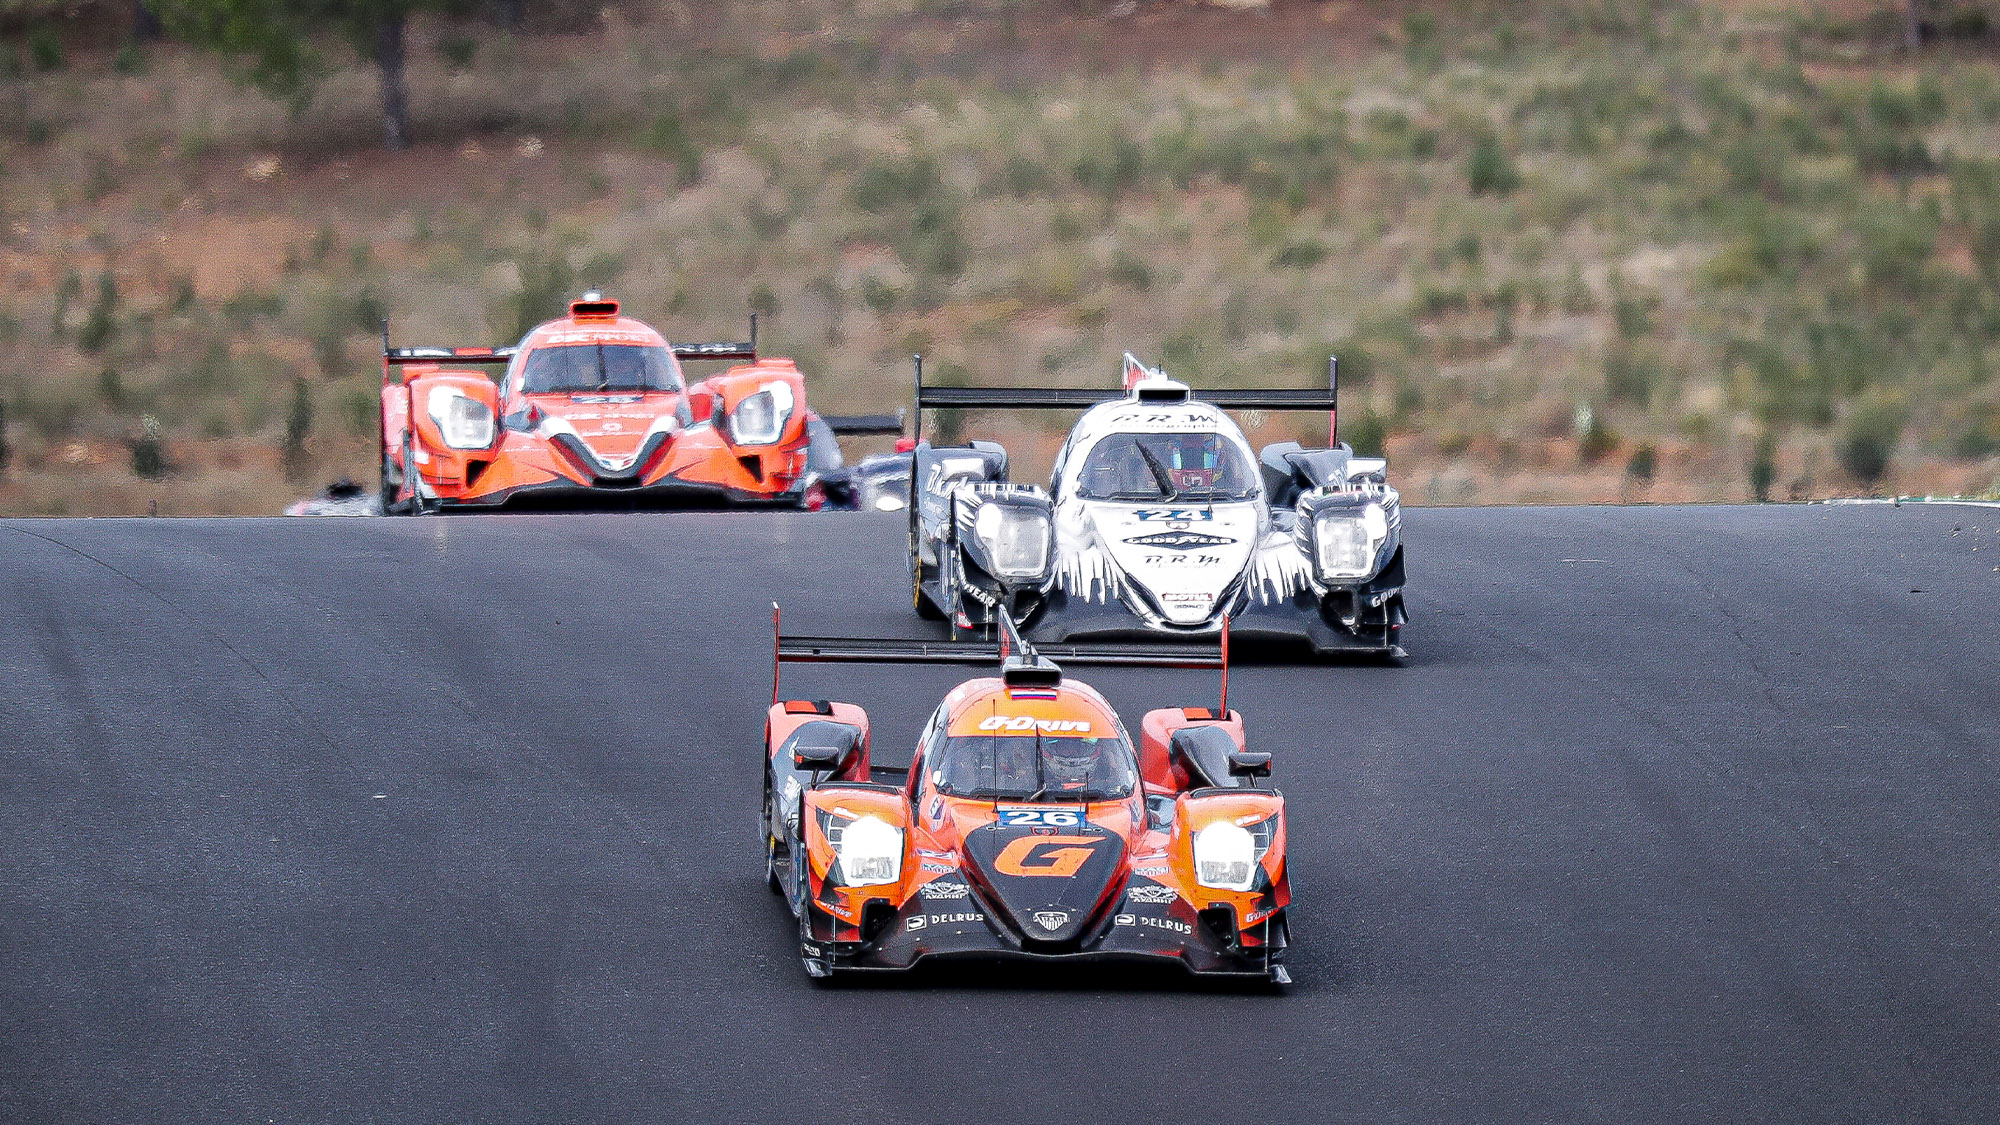 2020 European Le Mans Series at Portimao